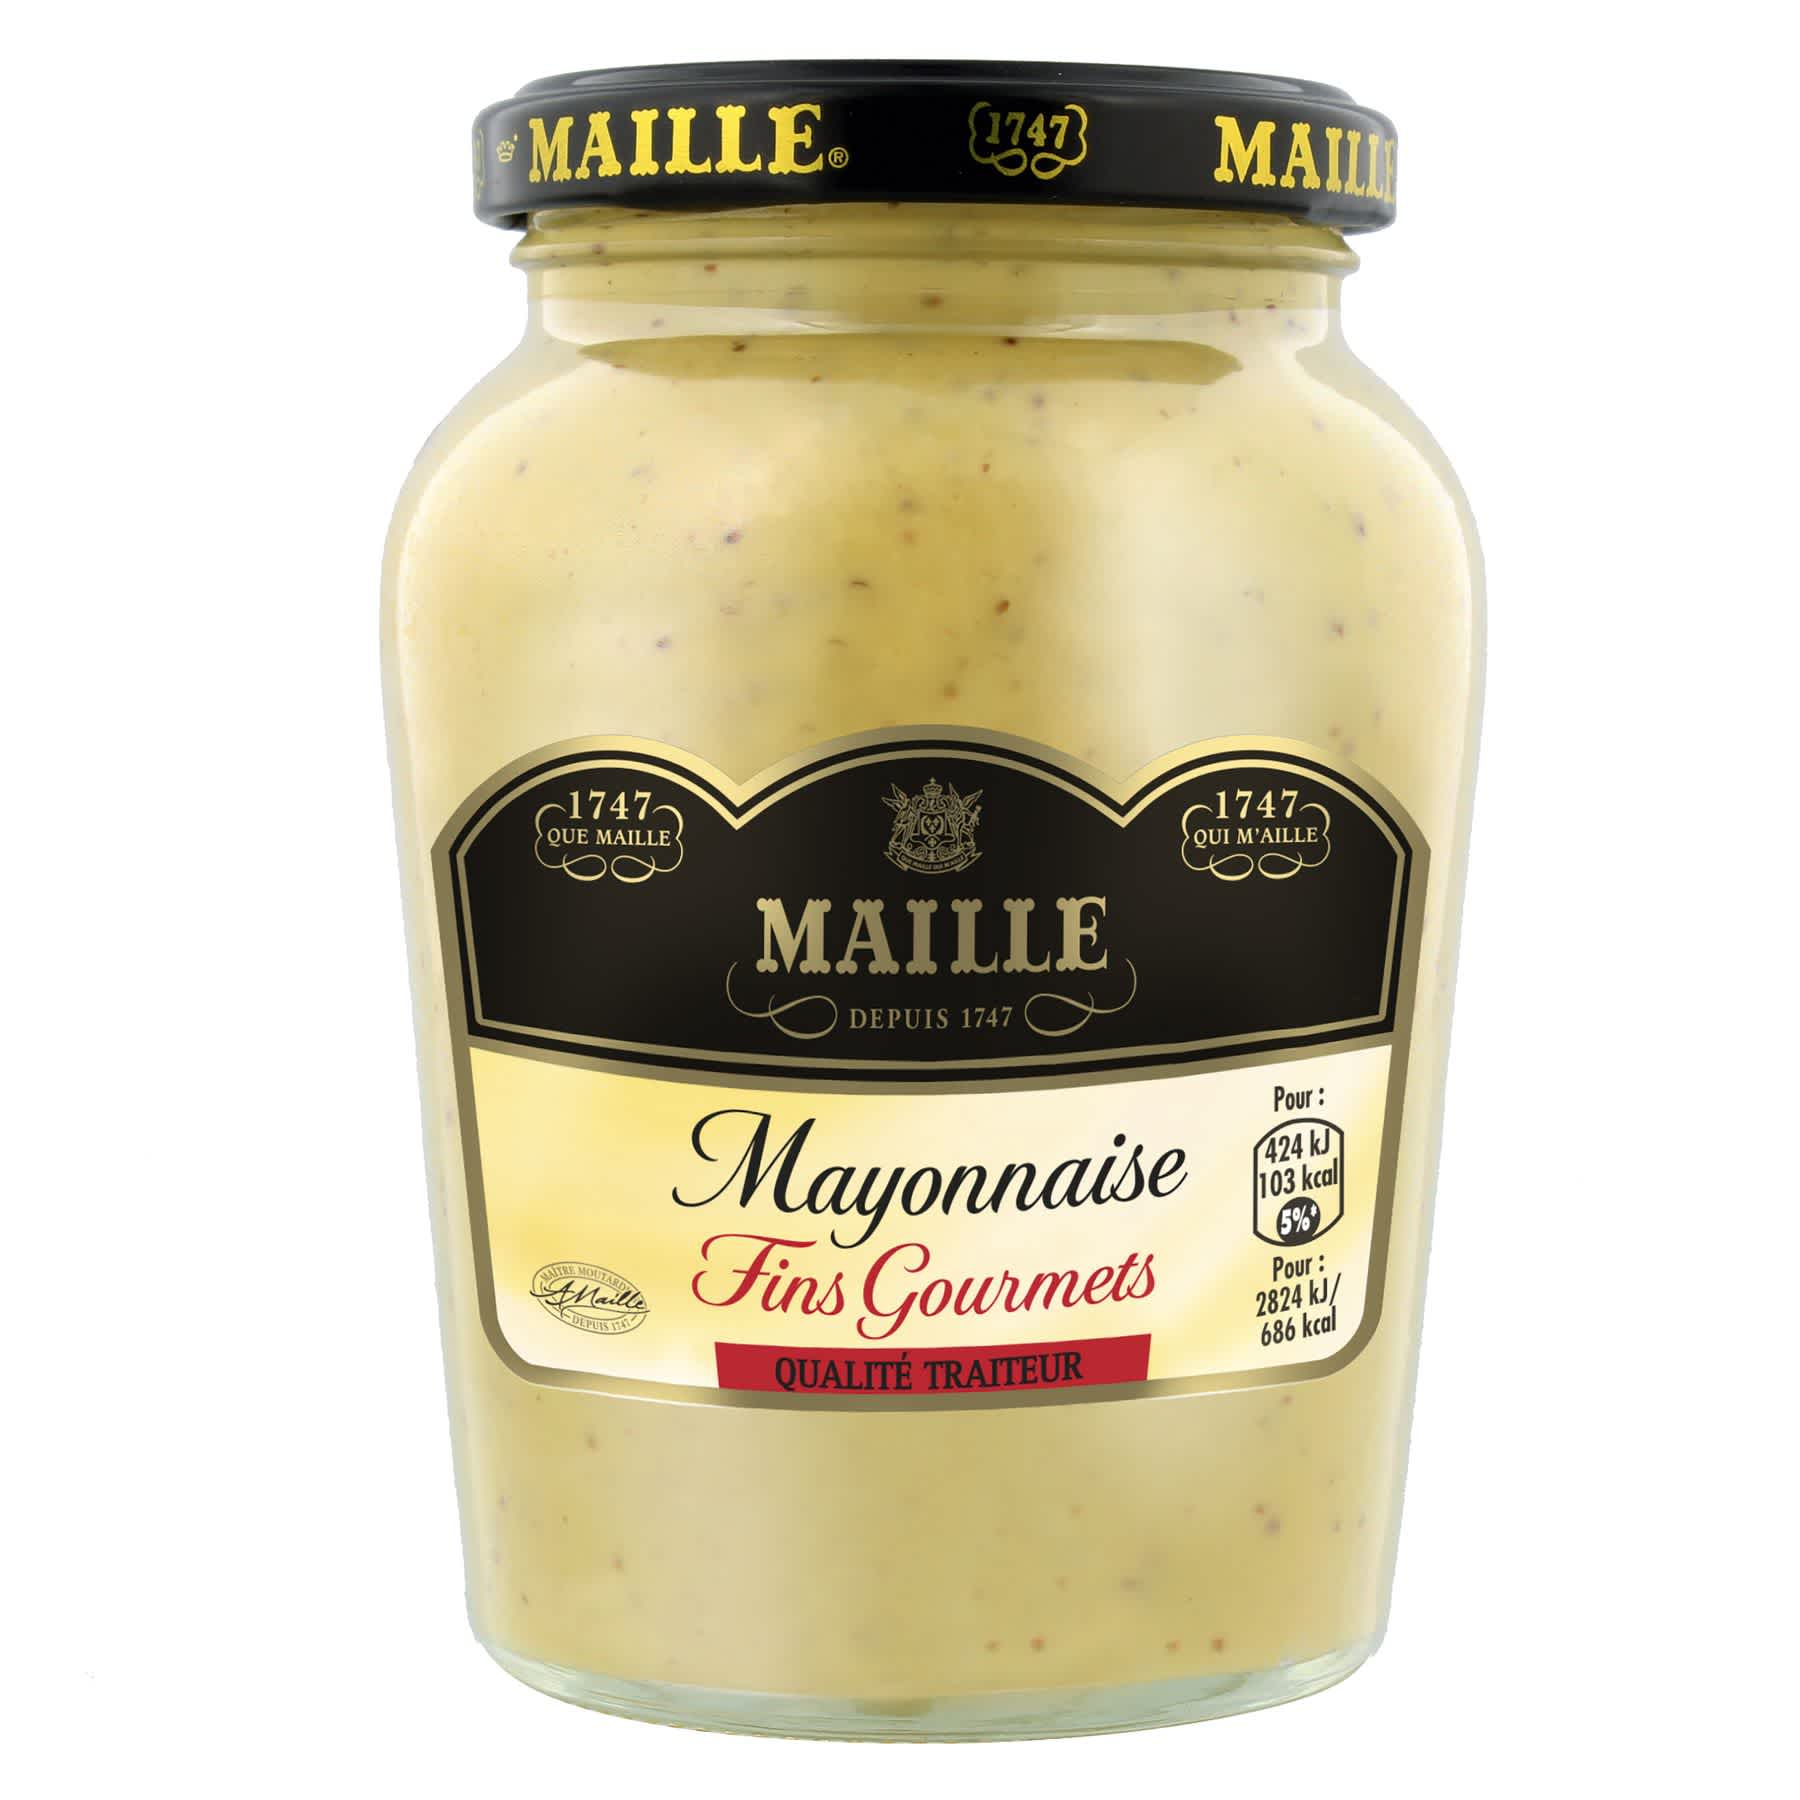 Maille - Mayonnaise Fins Gourmets Bocal 320 g, overview